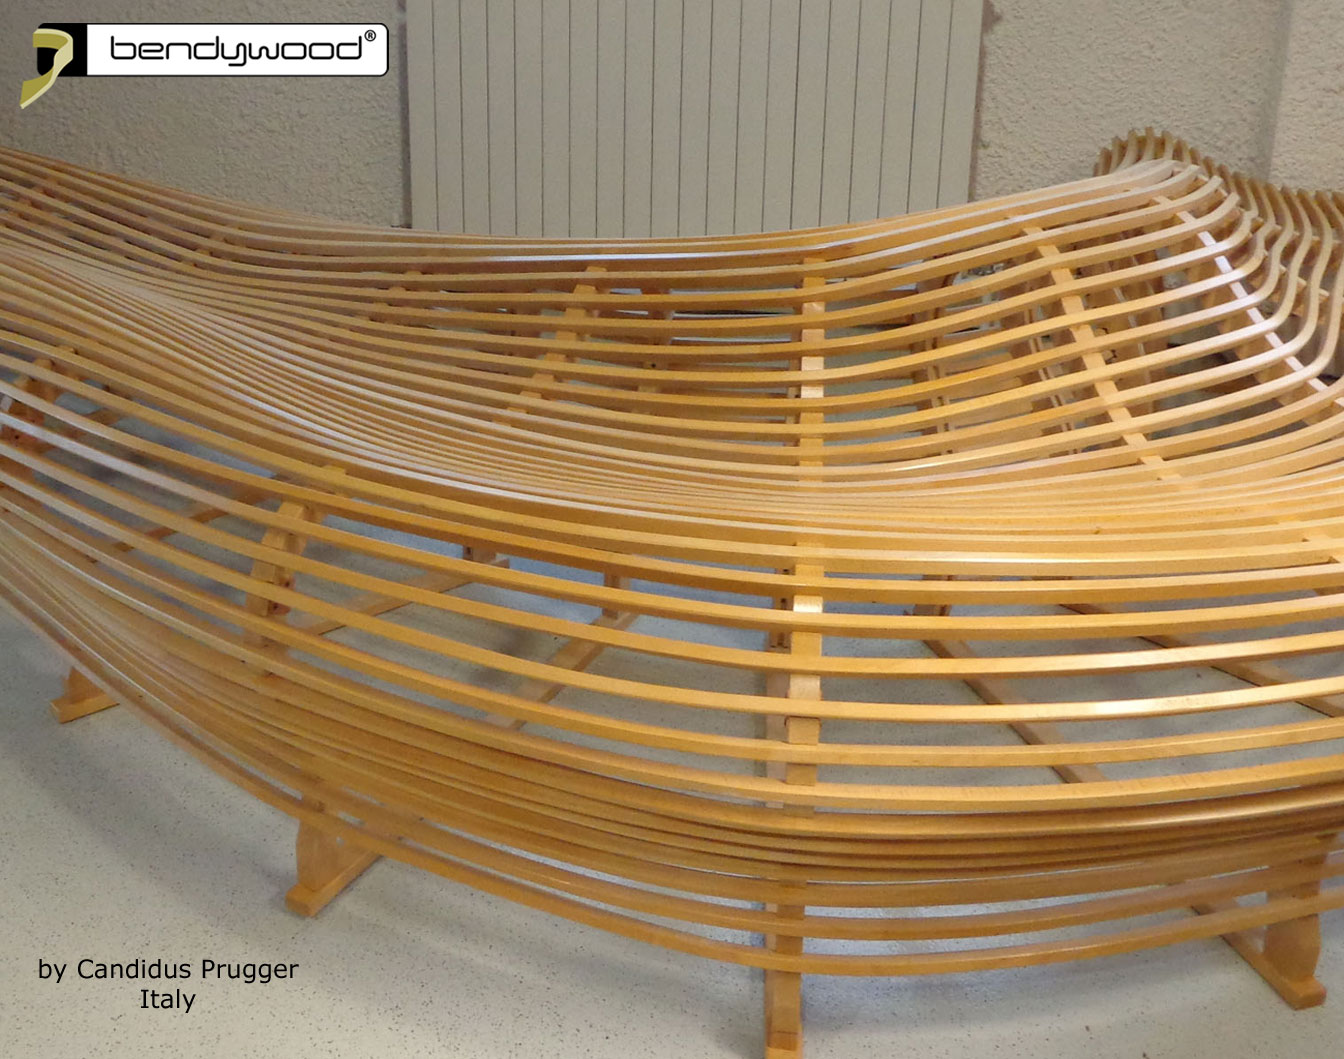 Bending wood Bendywood® - bench